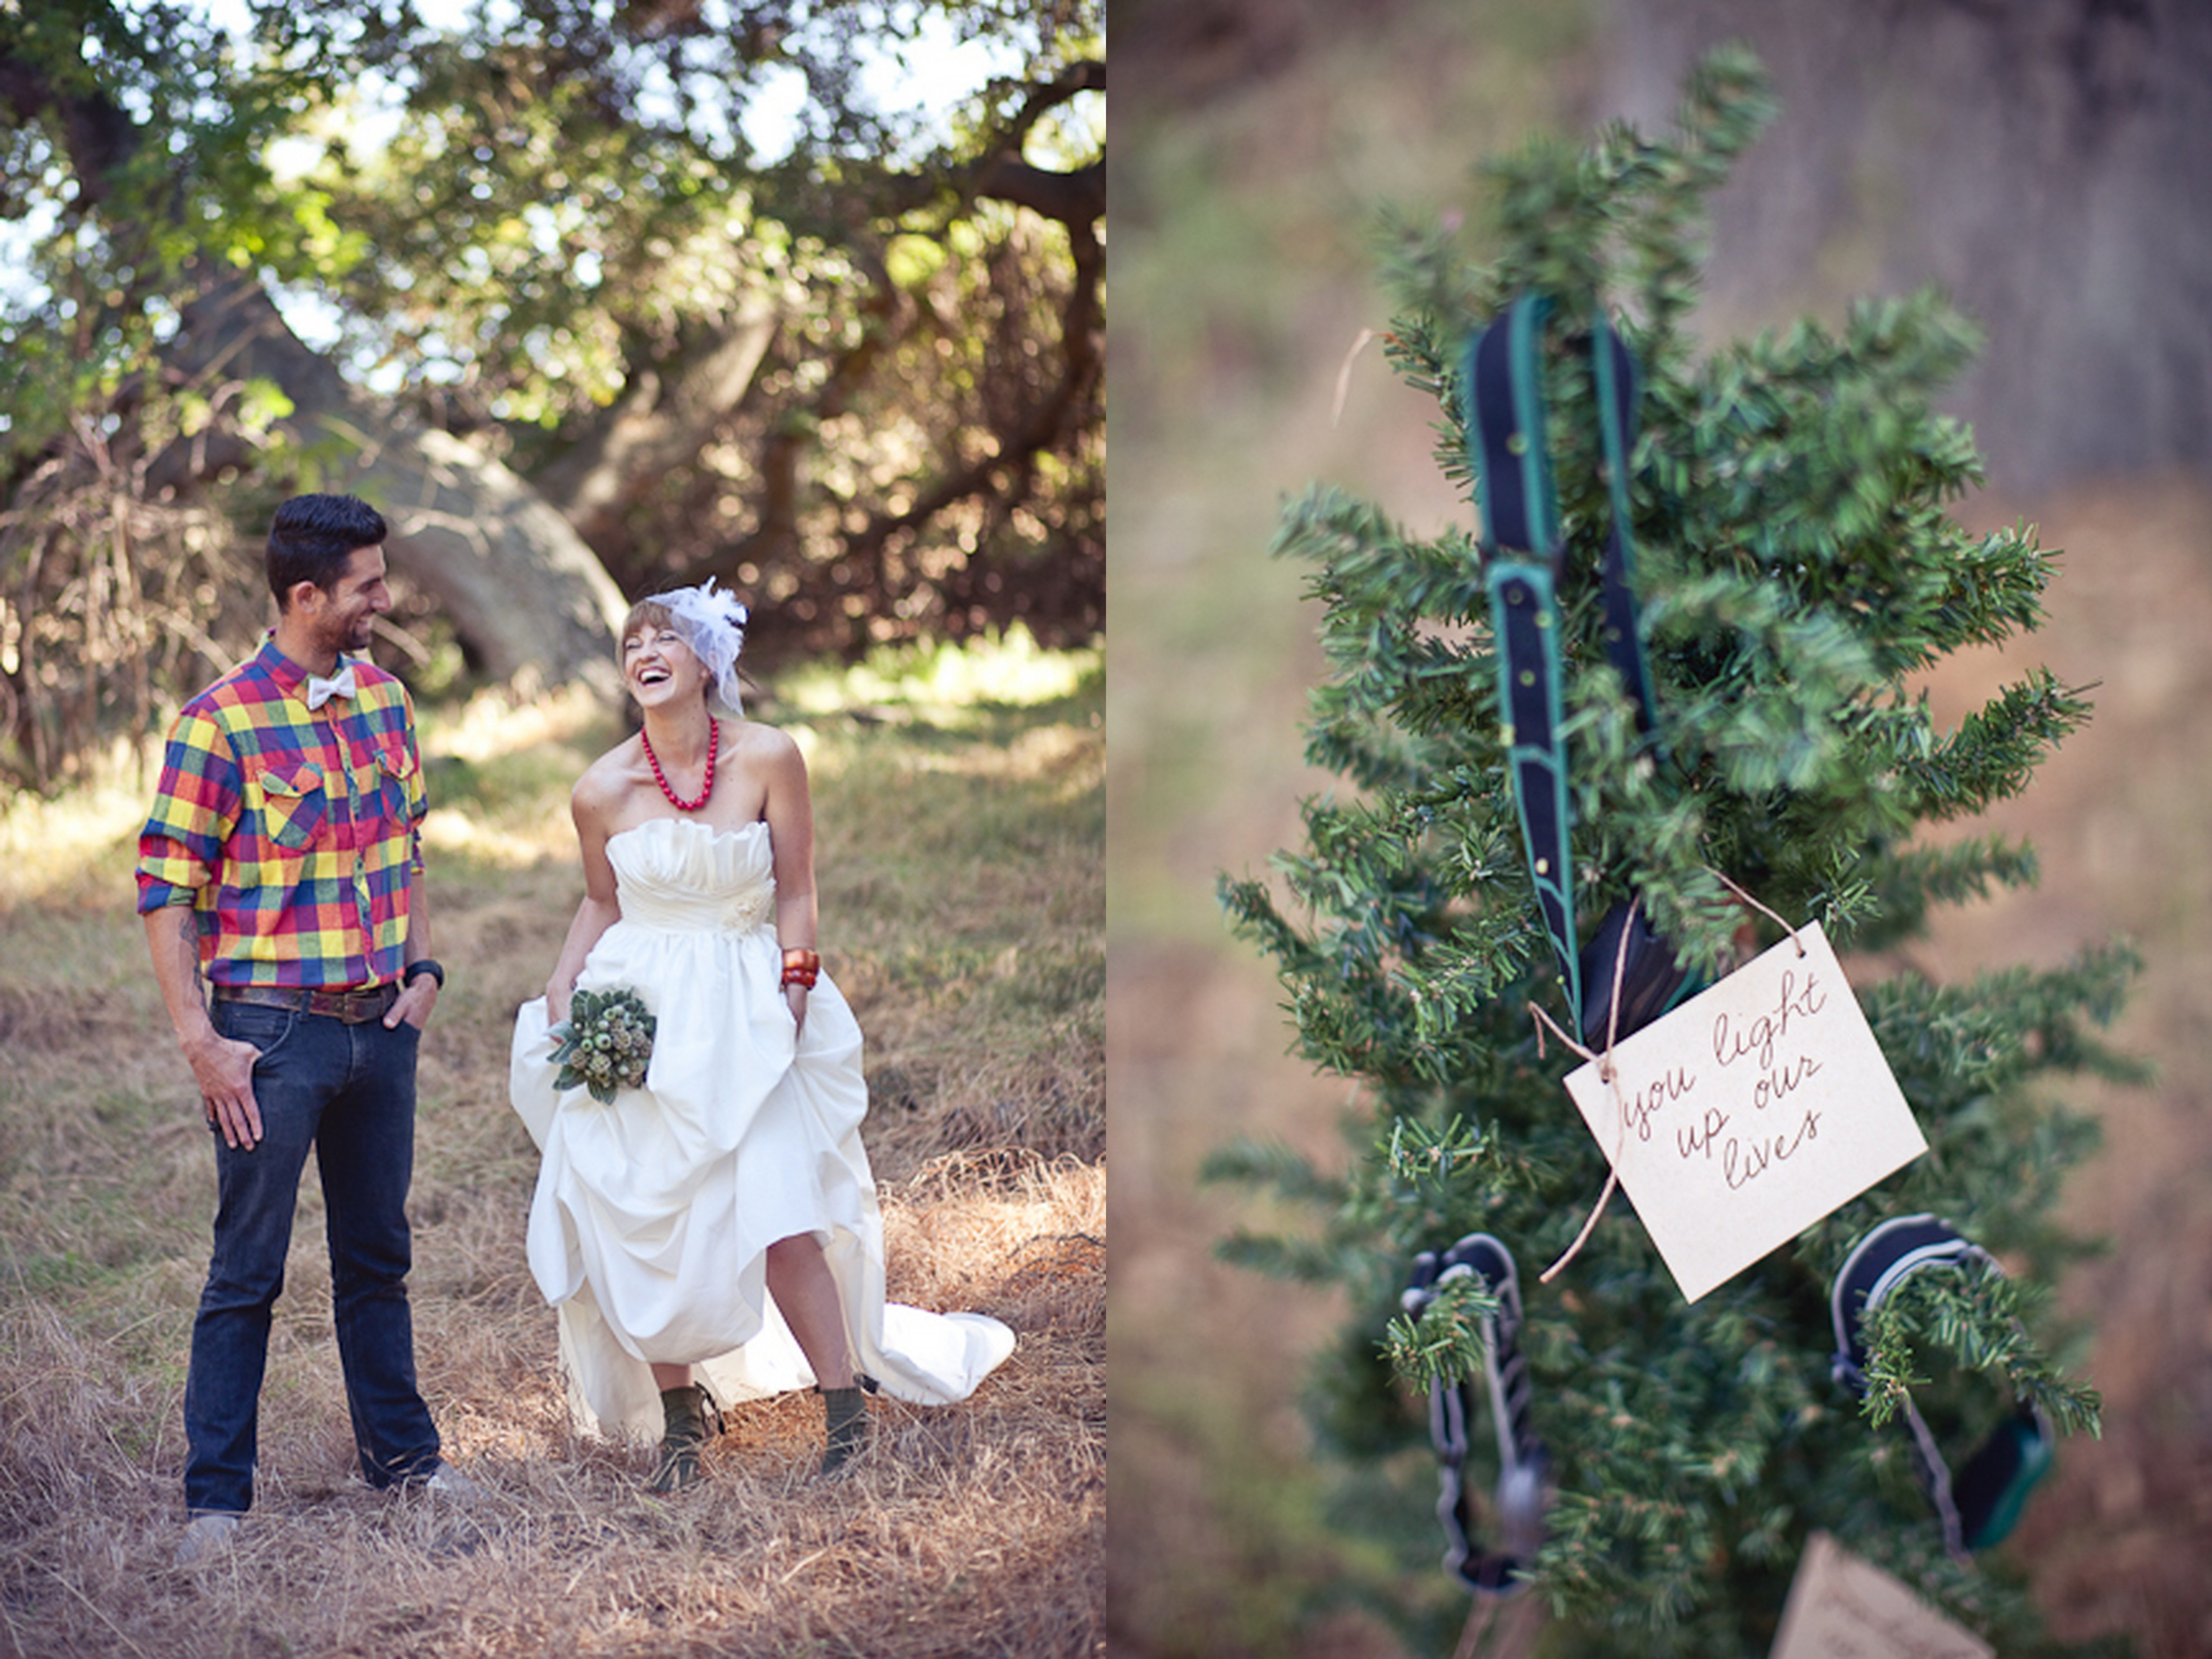 Outdoor enthusiast wedding ideas camping hiking mountain